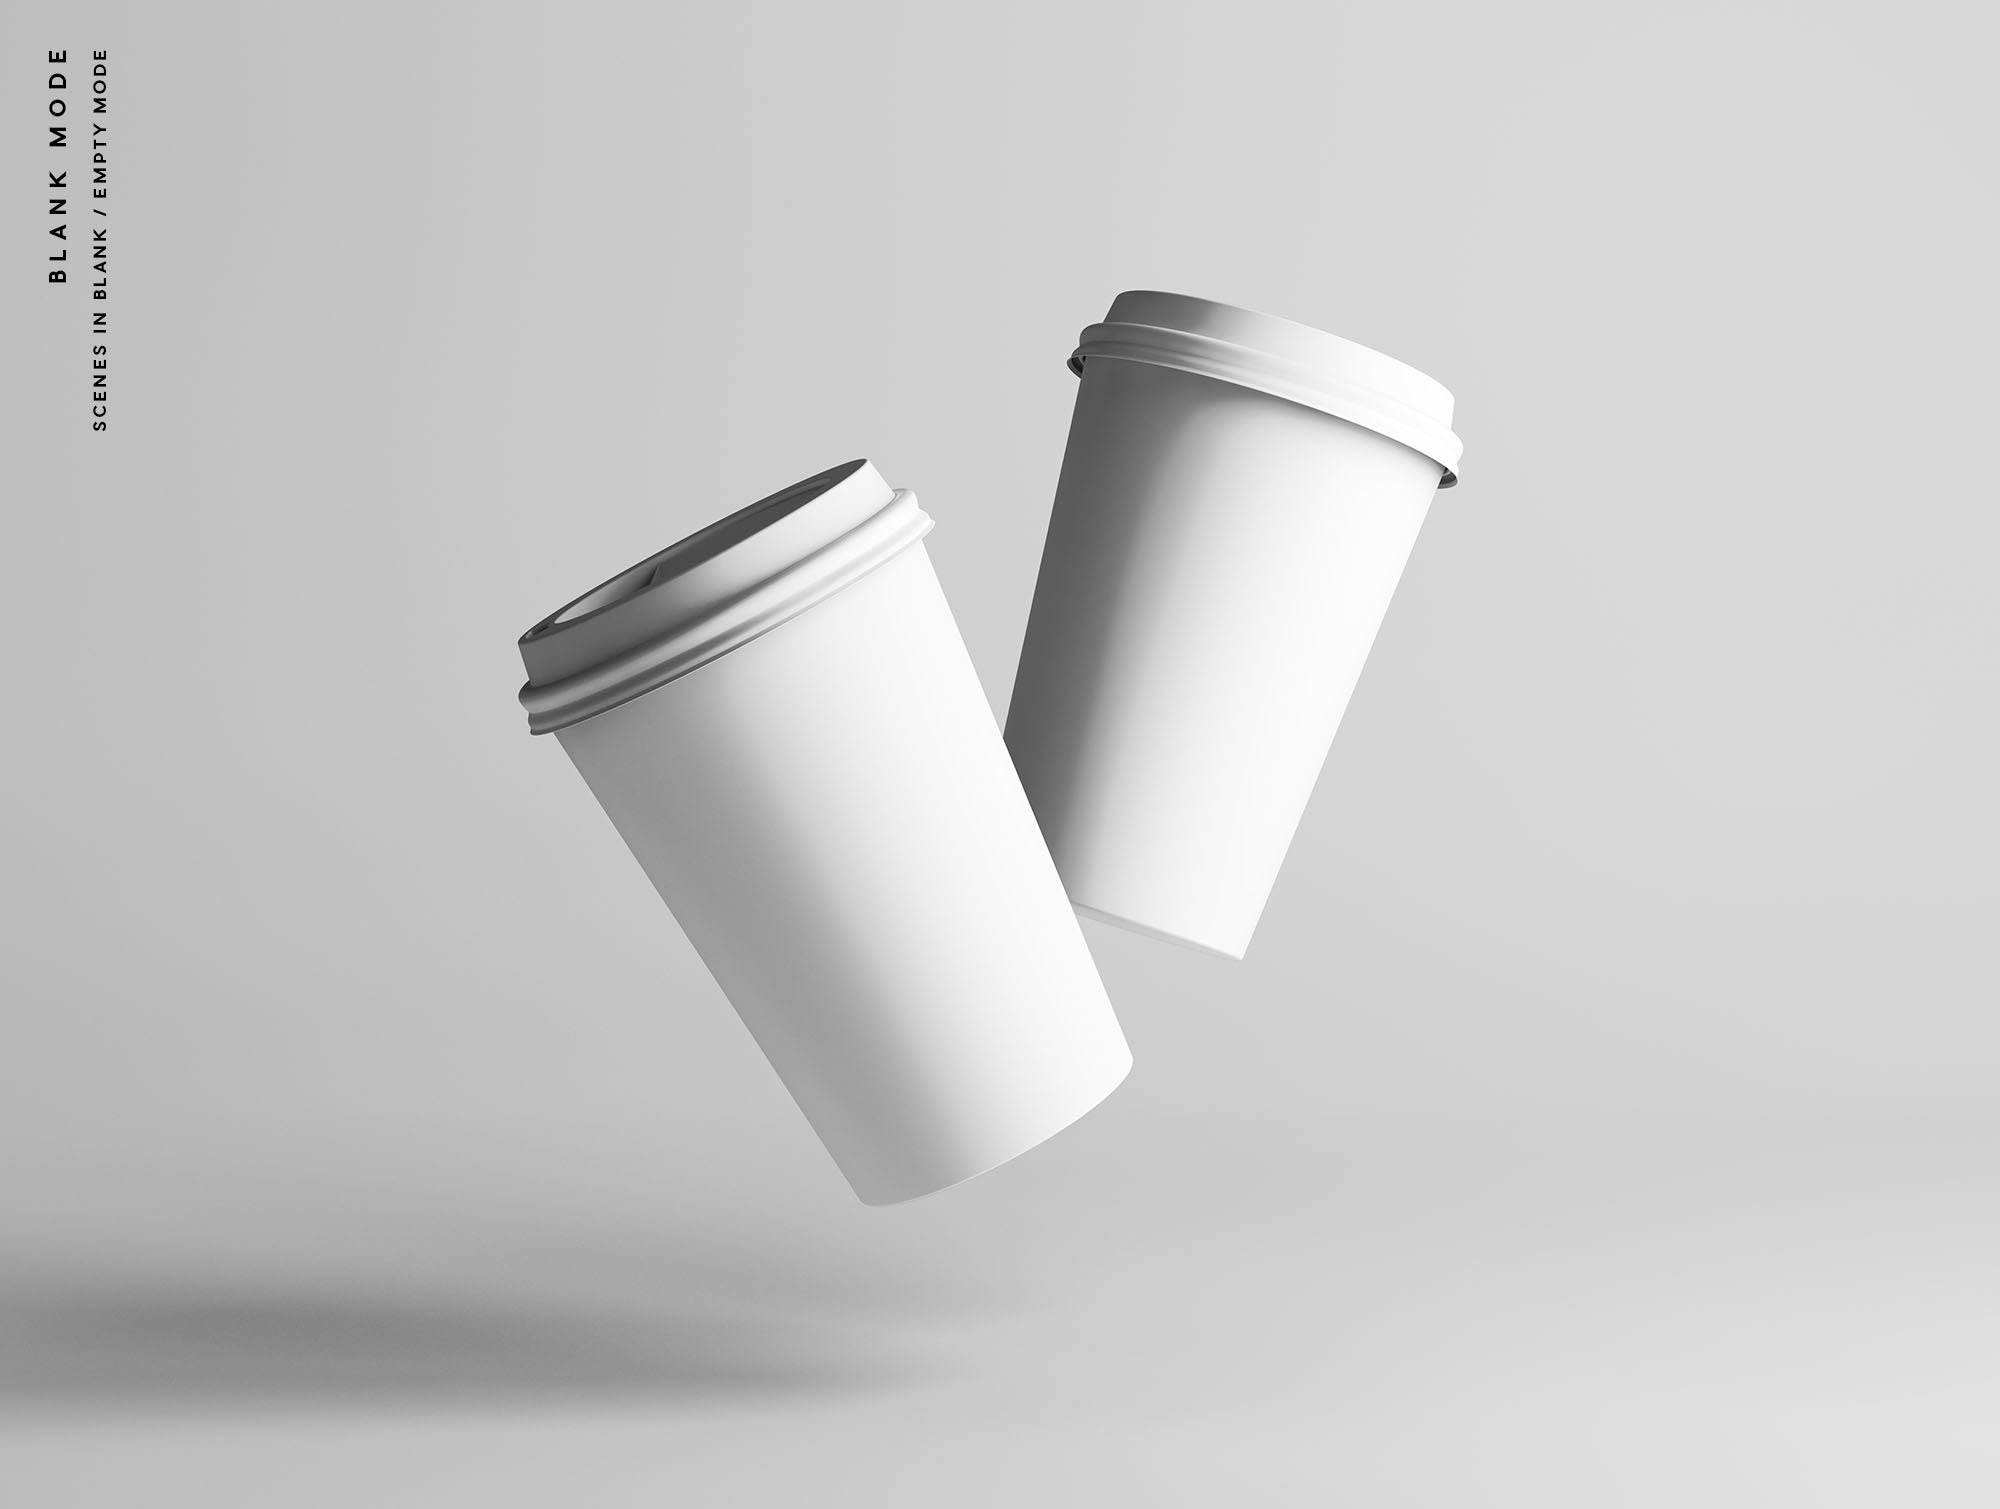 Coffee Cup Mockup - Blank Mode